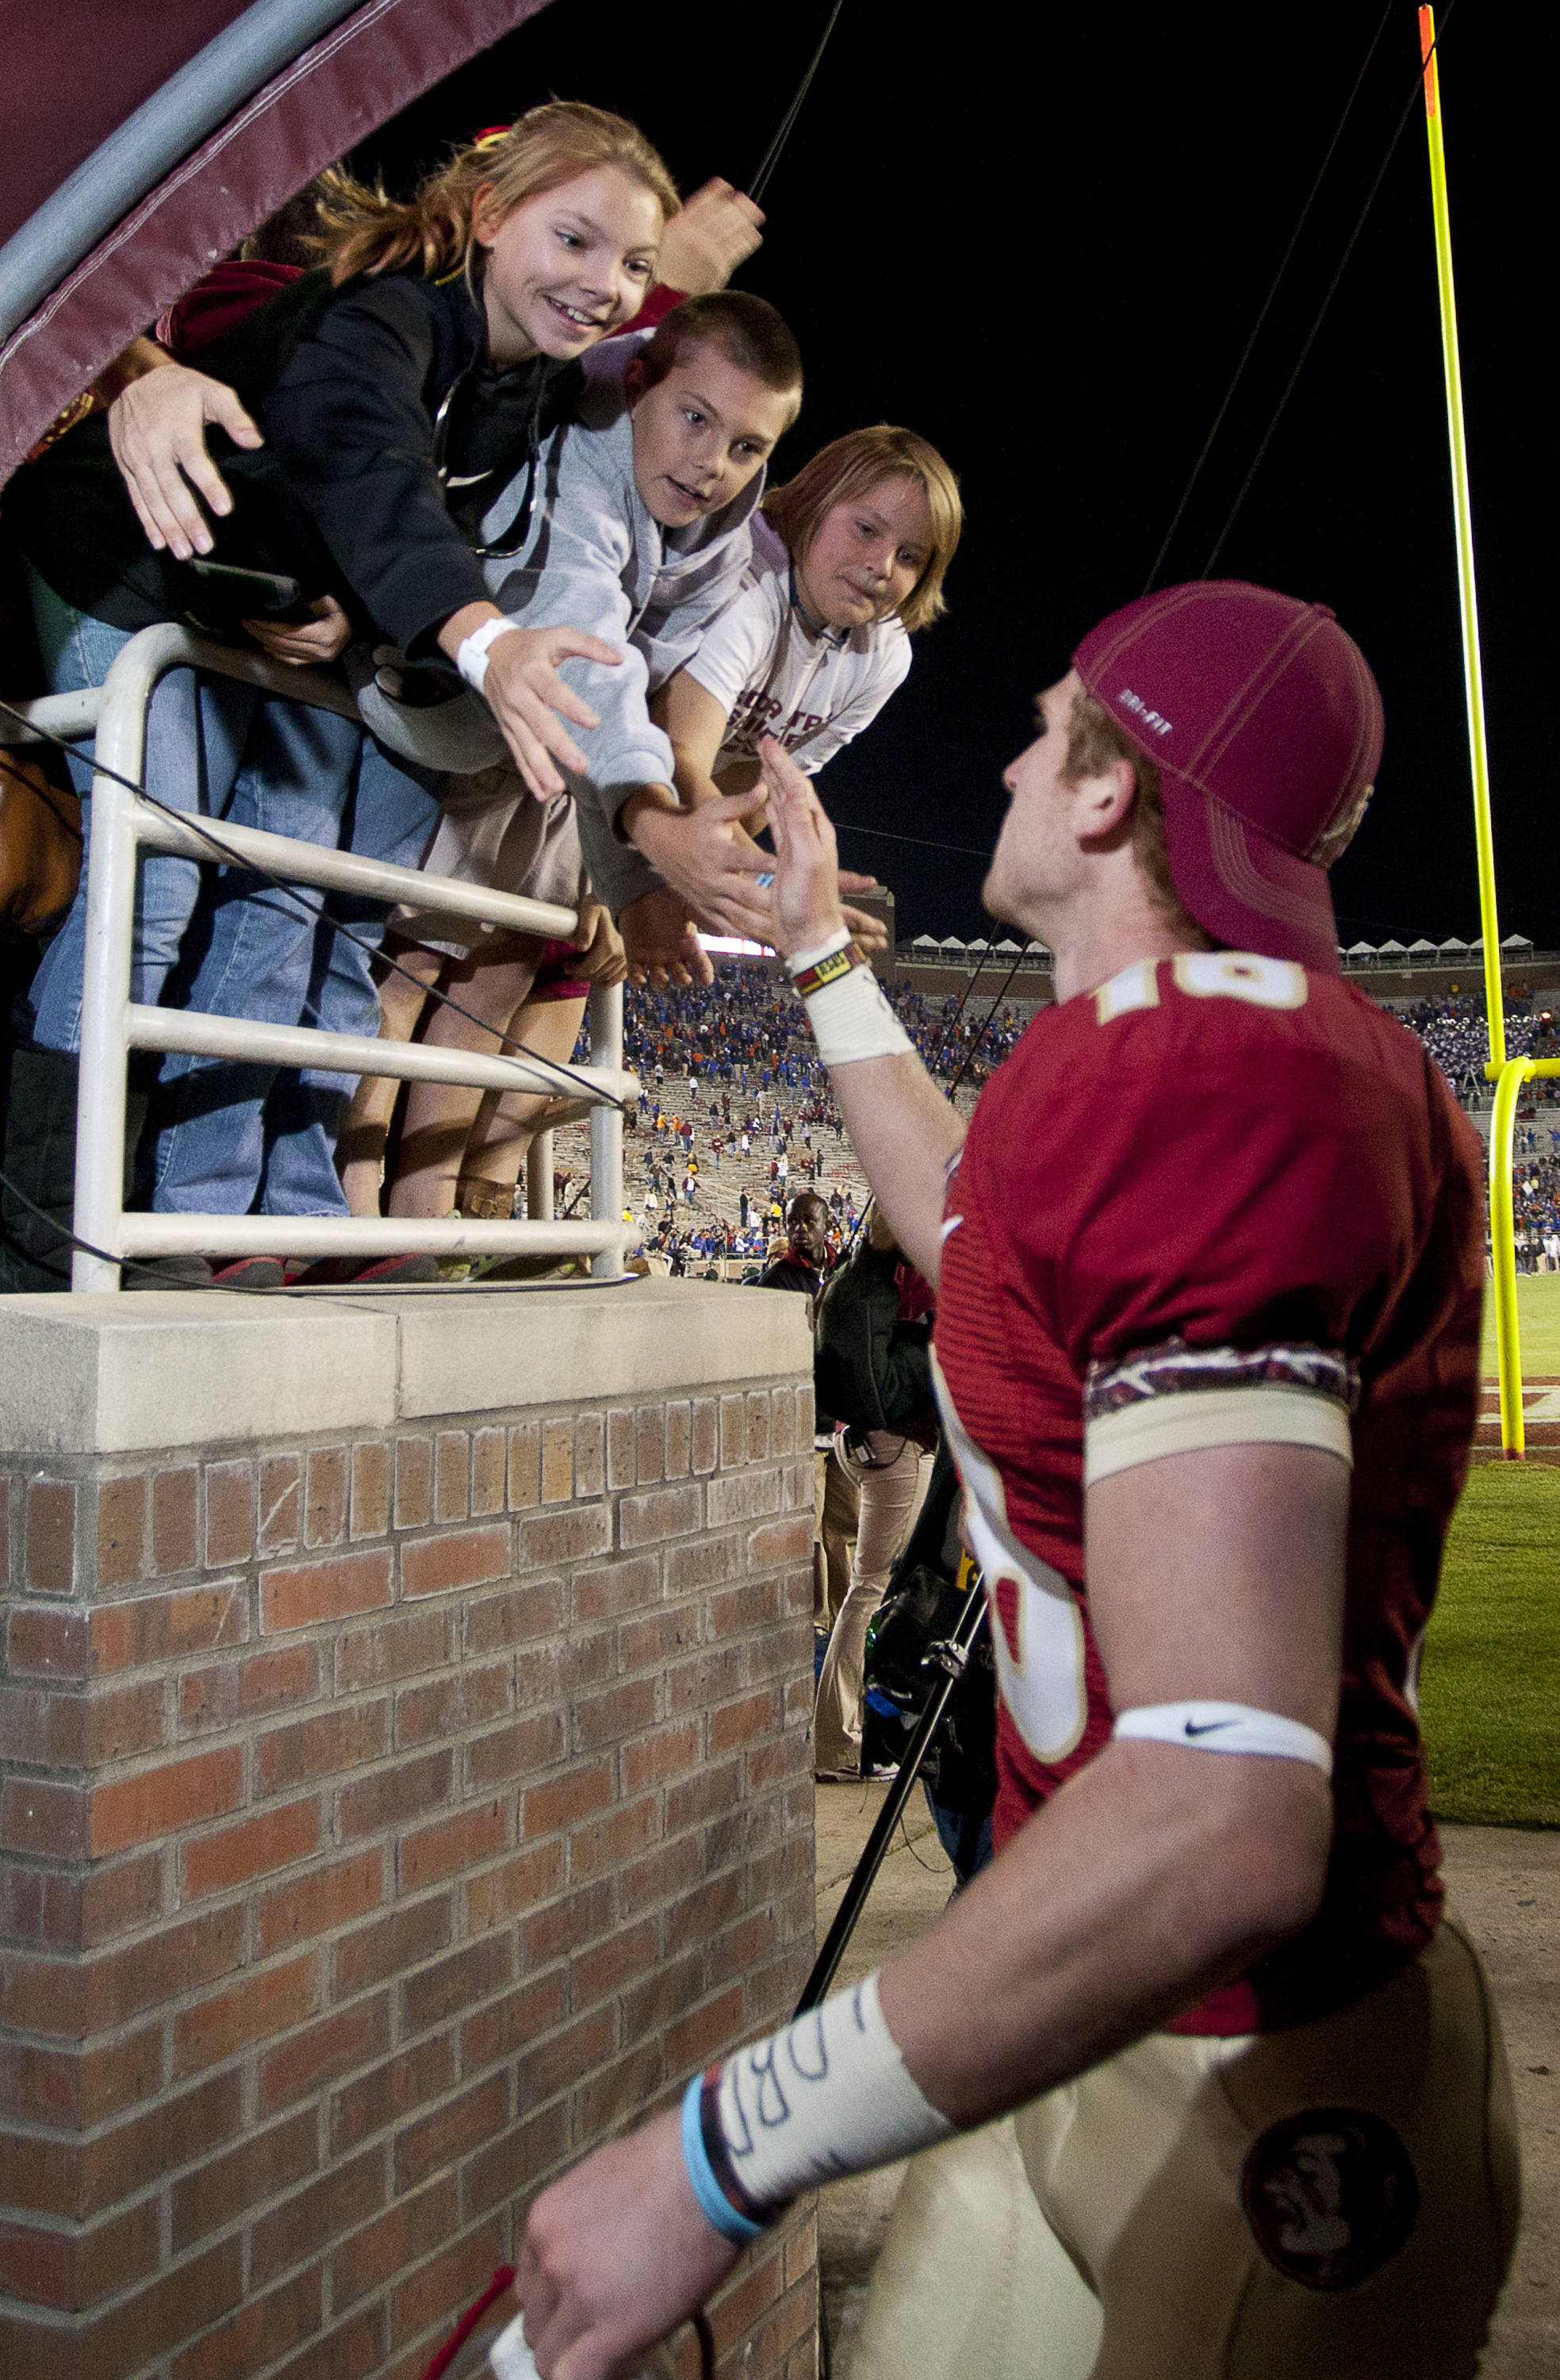 Fans greet Dustin Hopkins (18) after FSU Football's game against UF on Saturday, November 24, 2012 in Tallahassee, Fla.